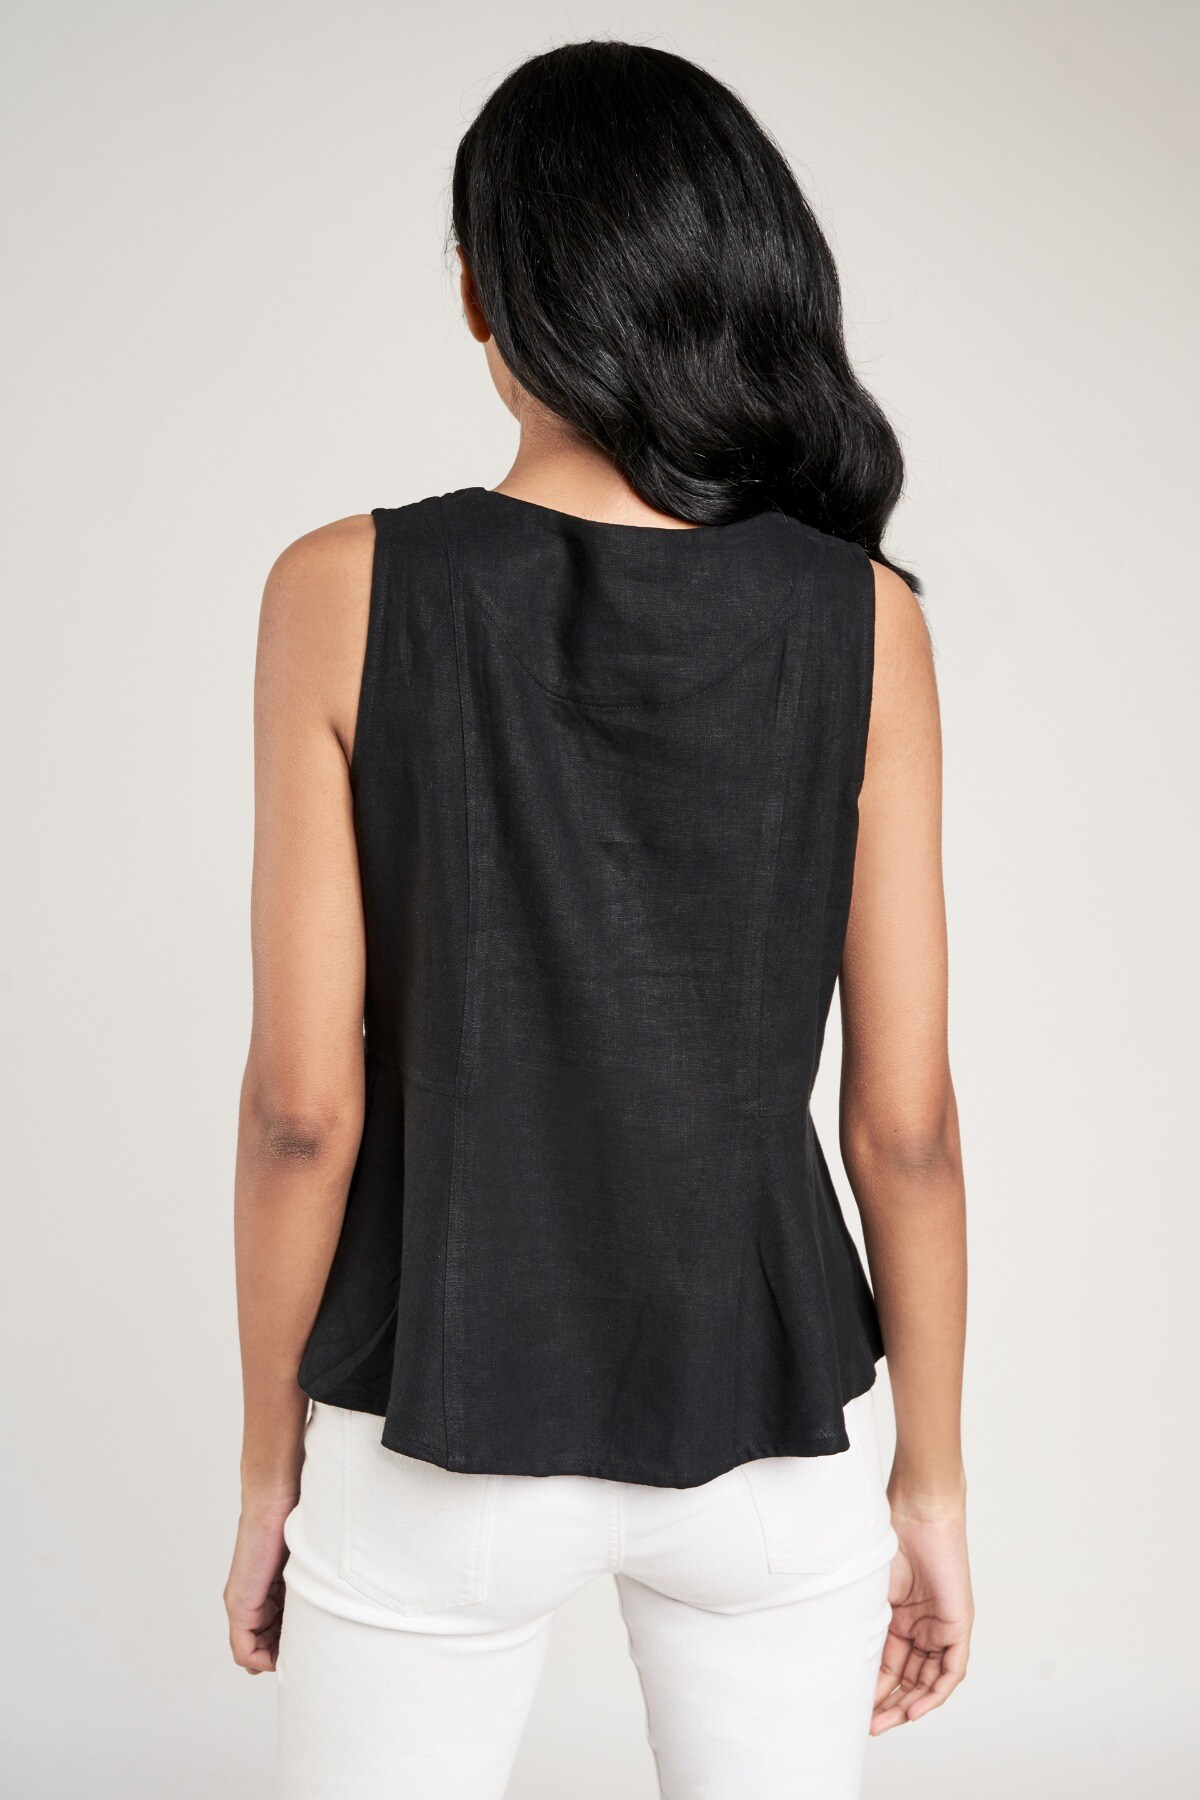 AND   Black Solid Fit And Flare Top